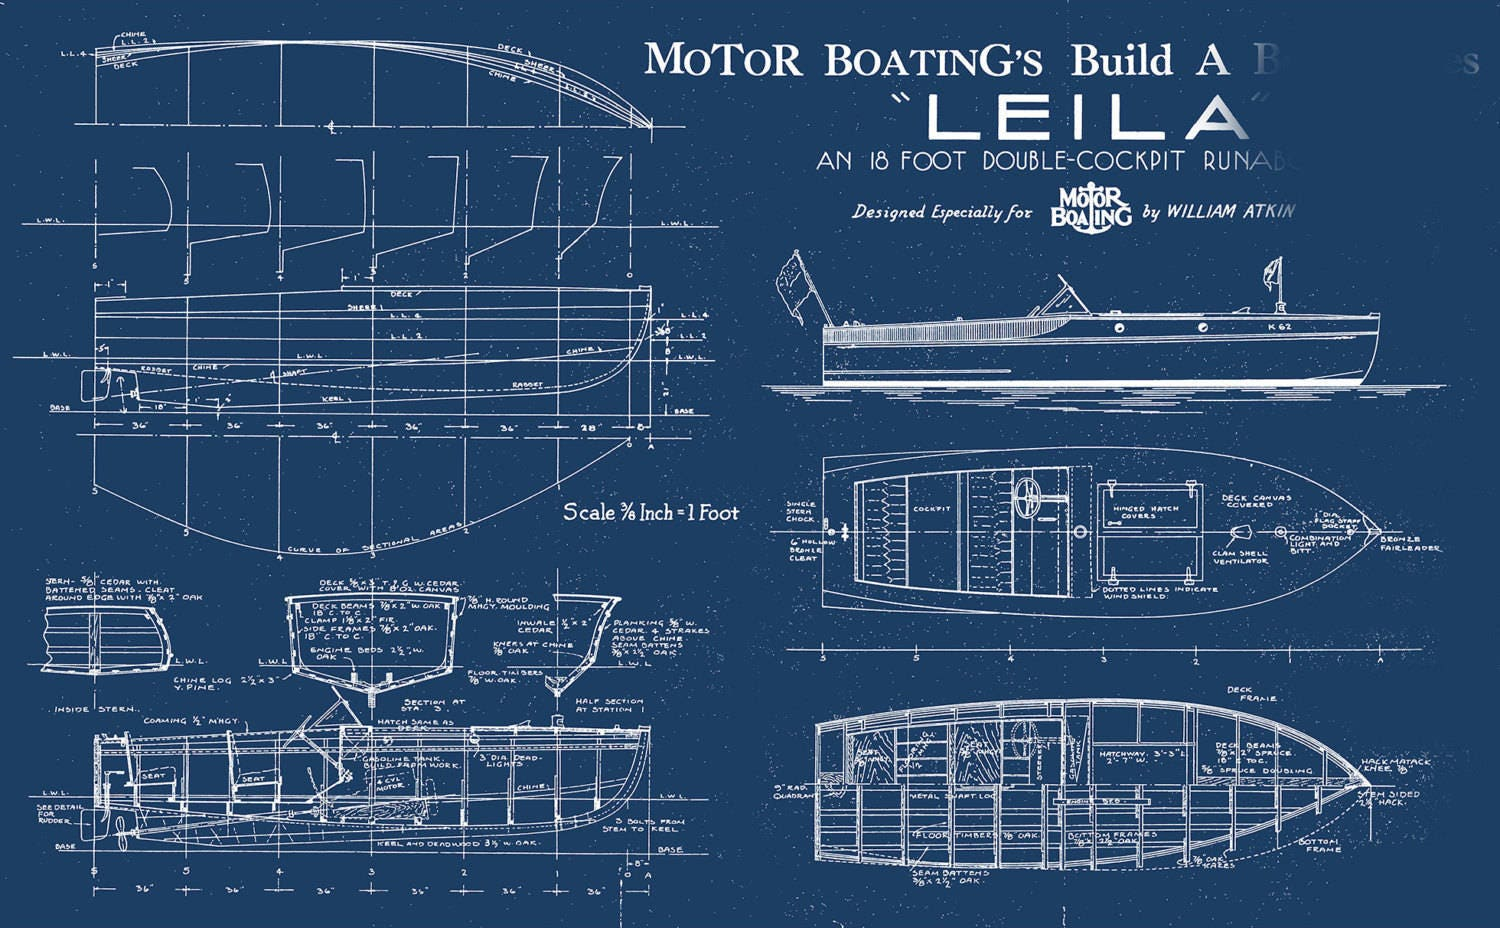 Print of vintage leila boat blueprint from motor boatings build a print of vintage leila boat blueprint from motor boatings build a boat series on your choice of matte paper photo paper or canvas malvernweather Gallery